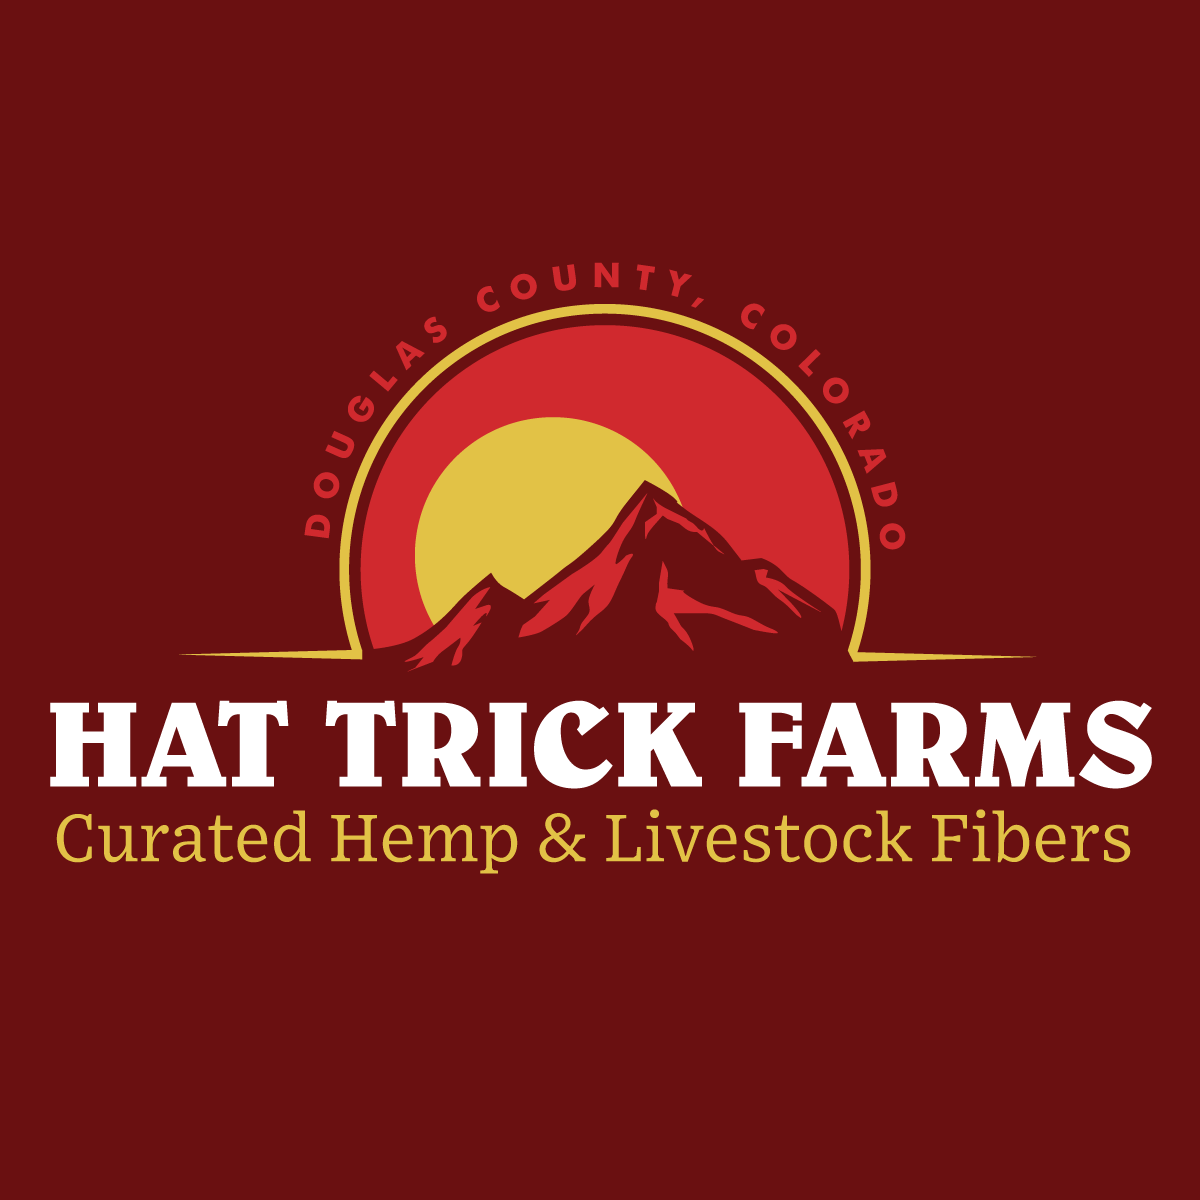 Curated Hemp & Livestock Products